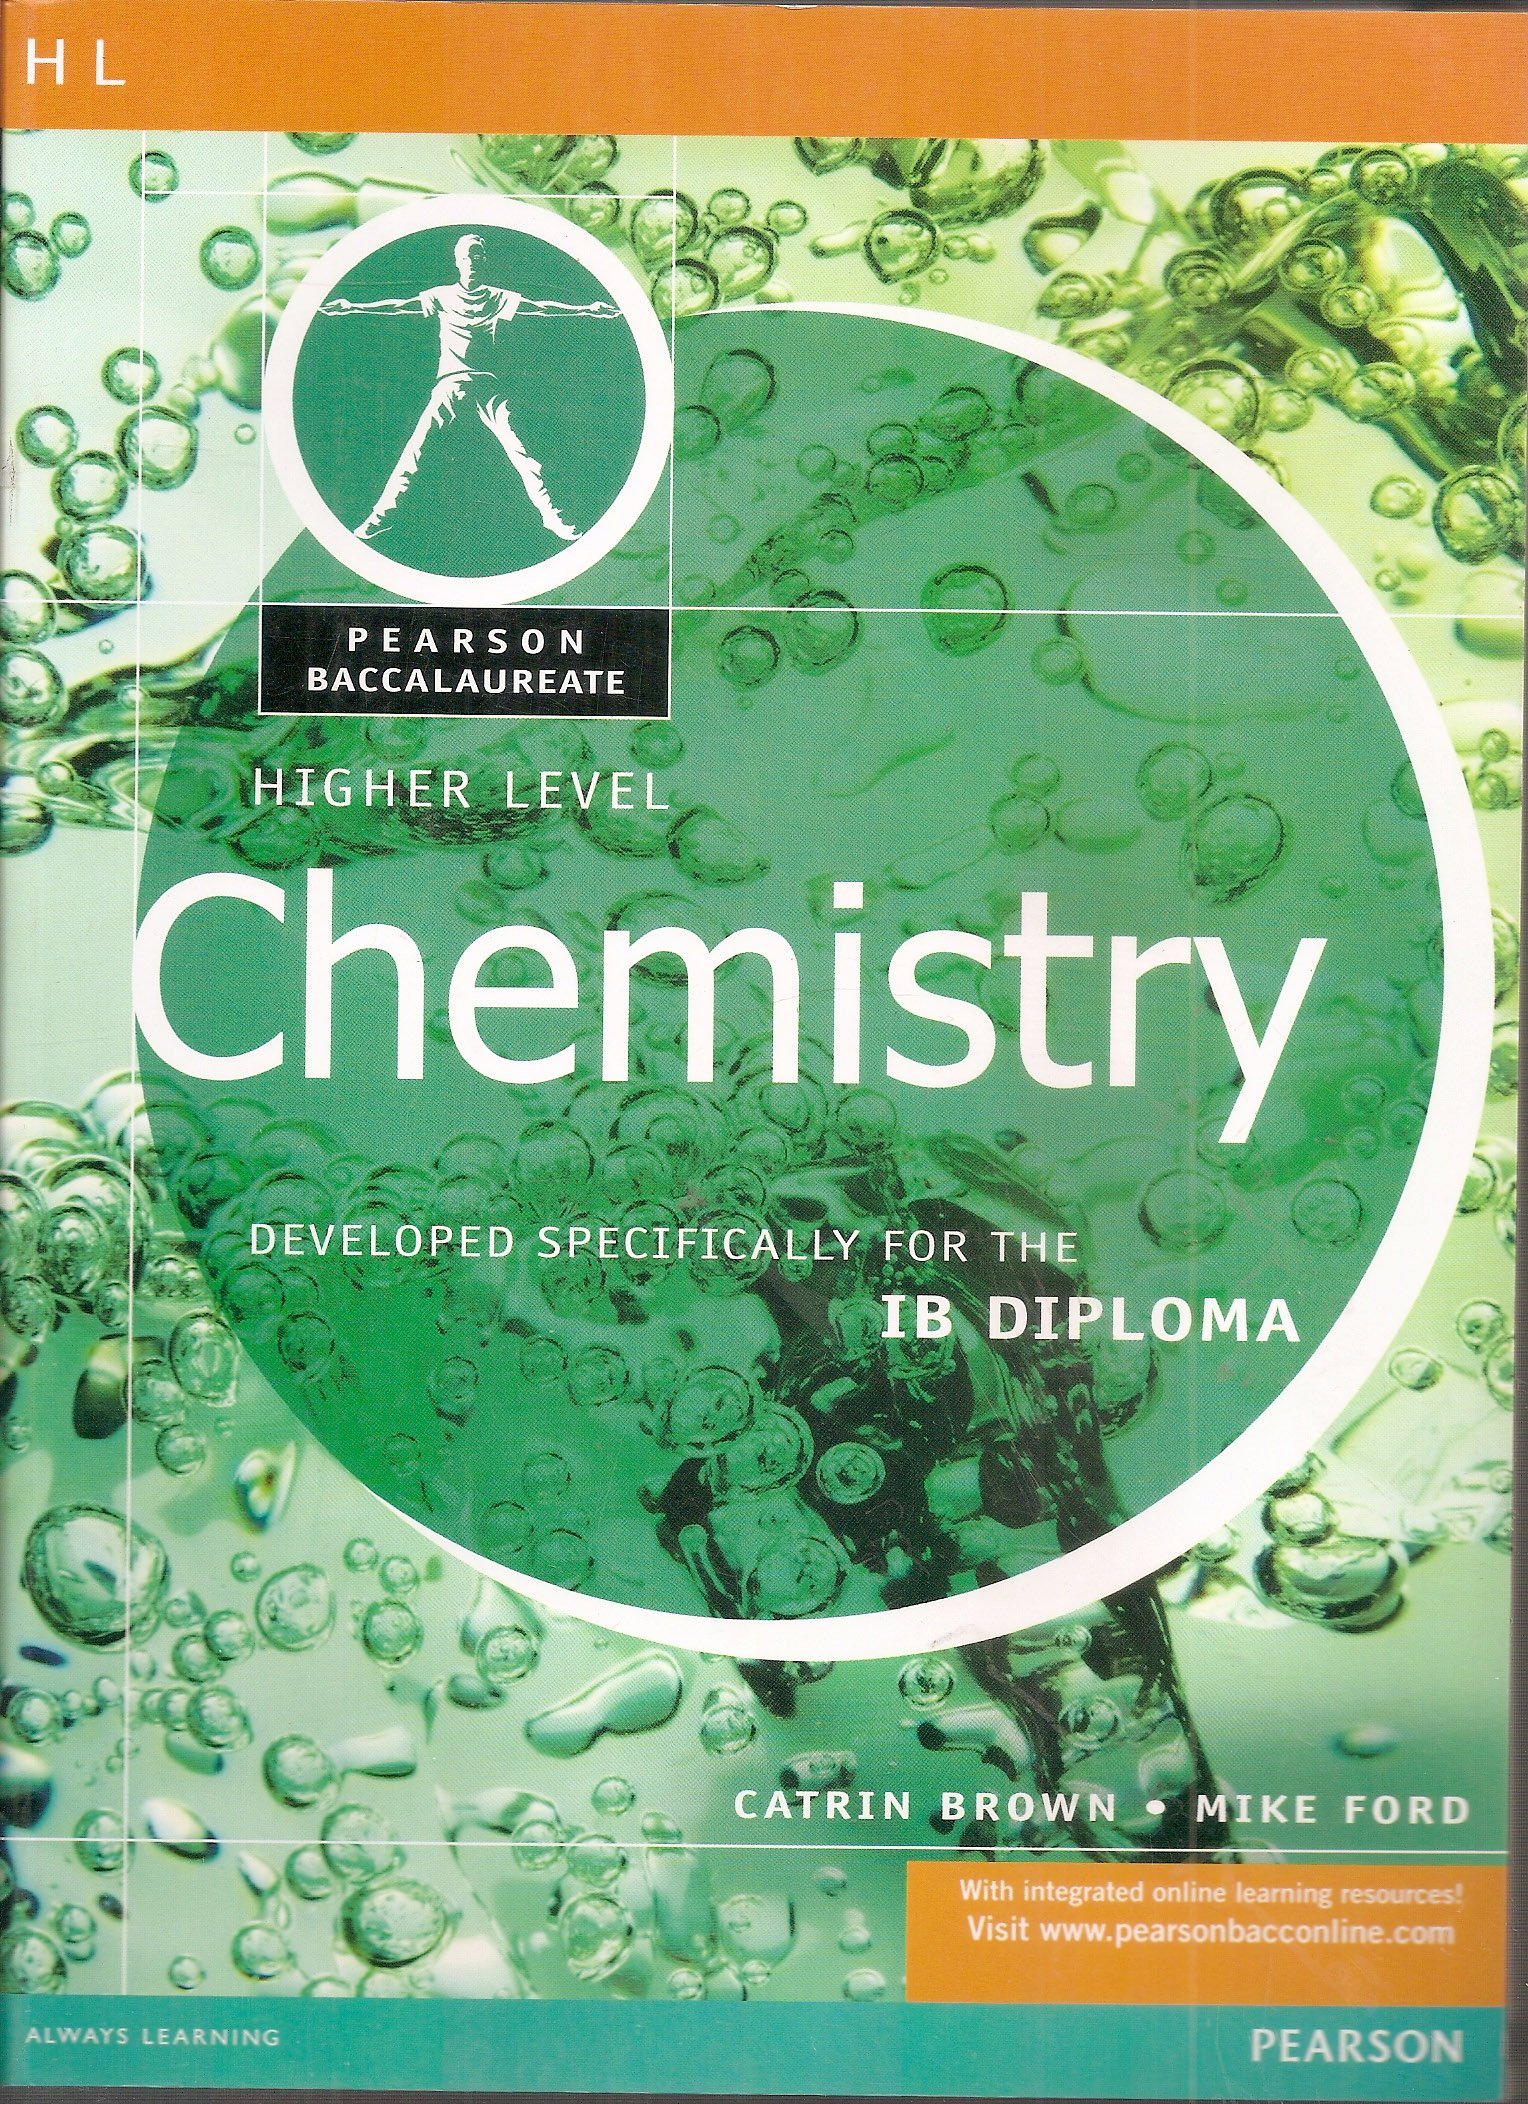 Buy pearson baccalaureate higher level chemistry for the ib diploma buy pearson baccalaureate higher level chemistry for the ib diploma pearson international baccalaureate diploma international editions book online at fandeluxe Images